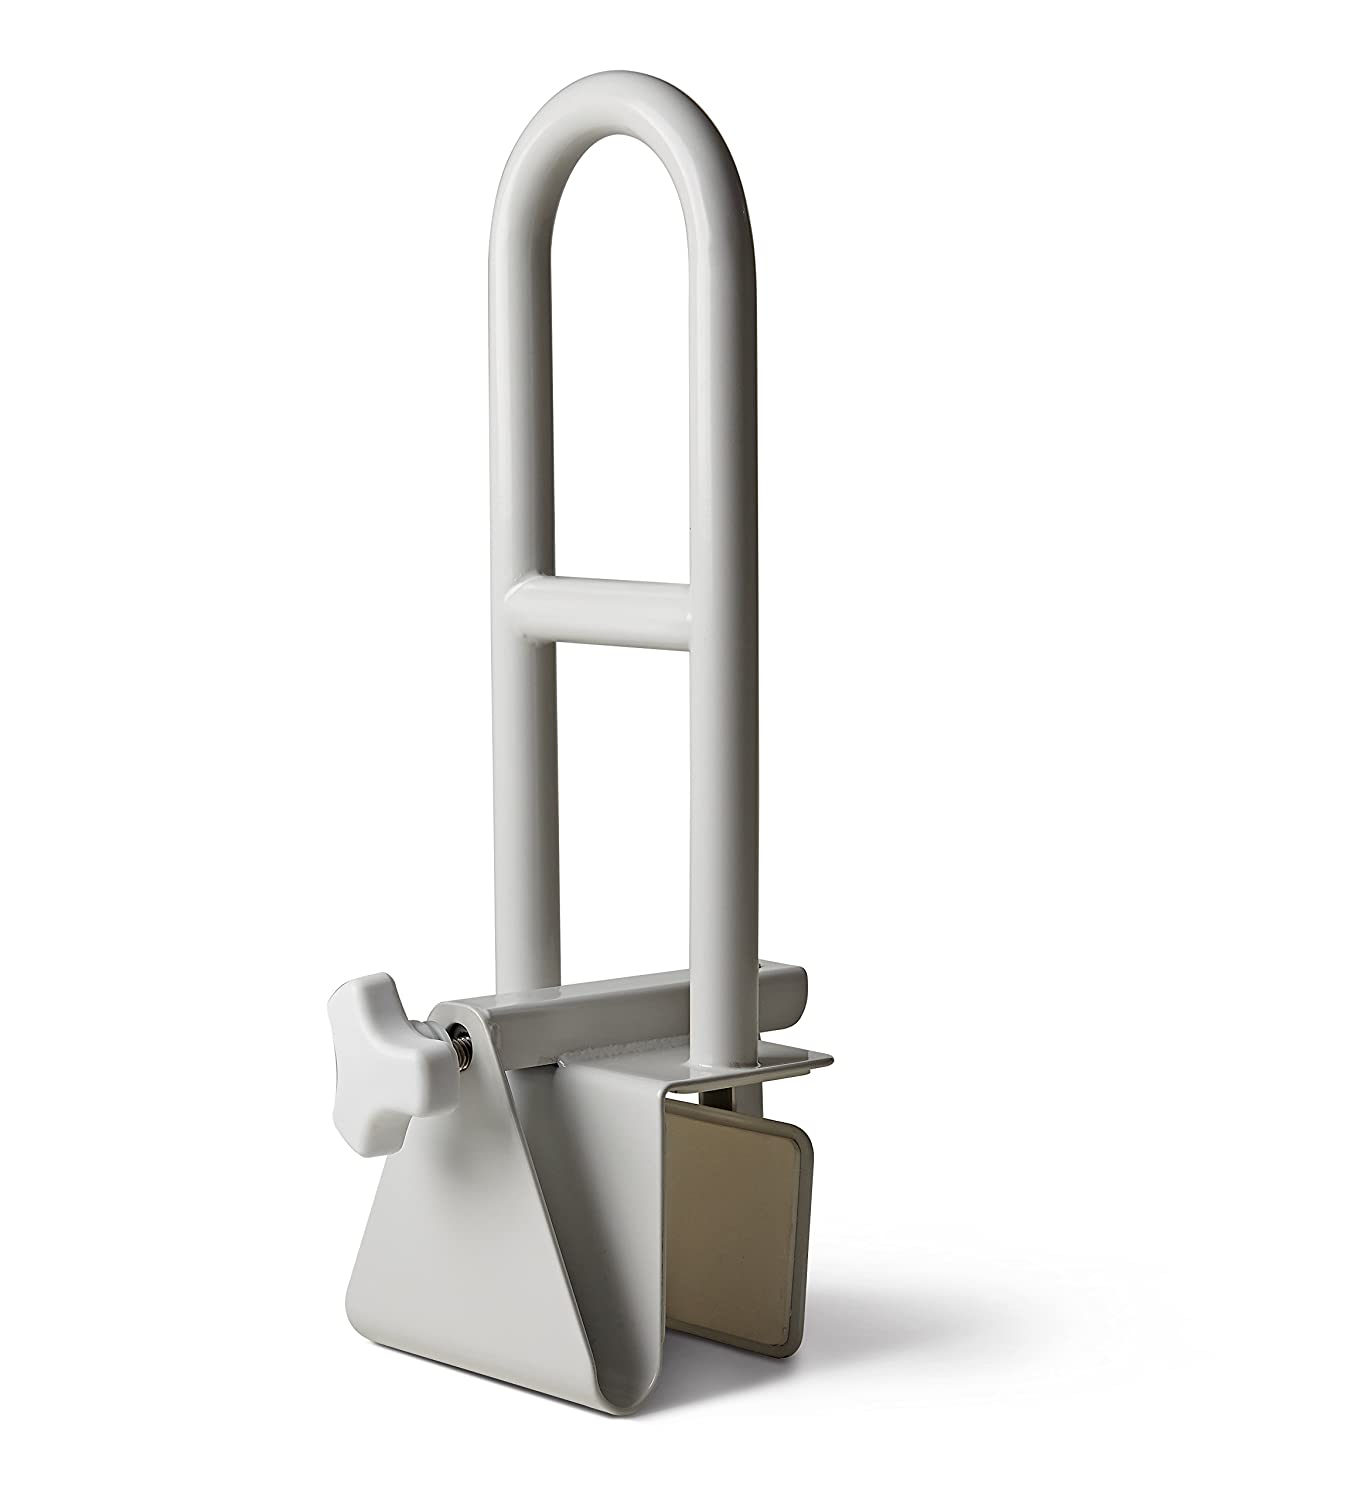 Amazon.com: Medline Bathtub Safety Grab Bar, Handle Clamps on to ...